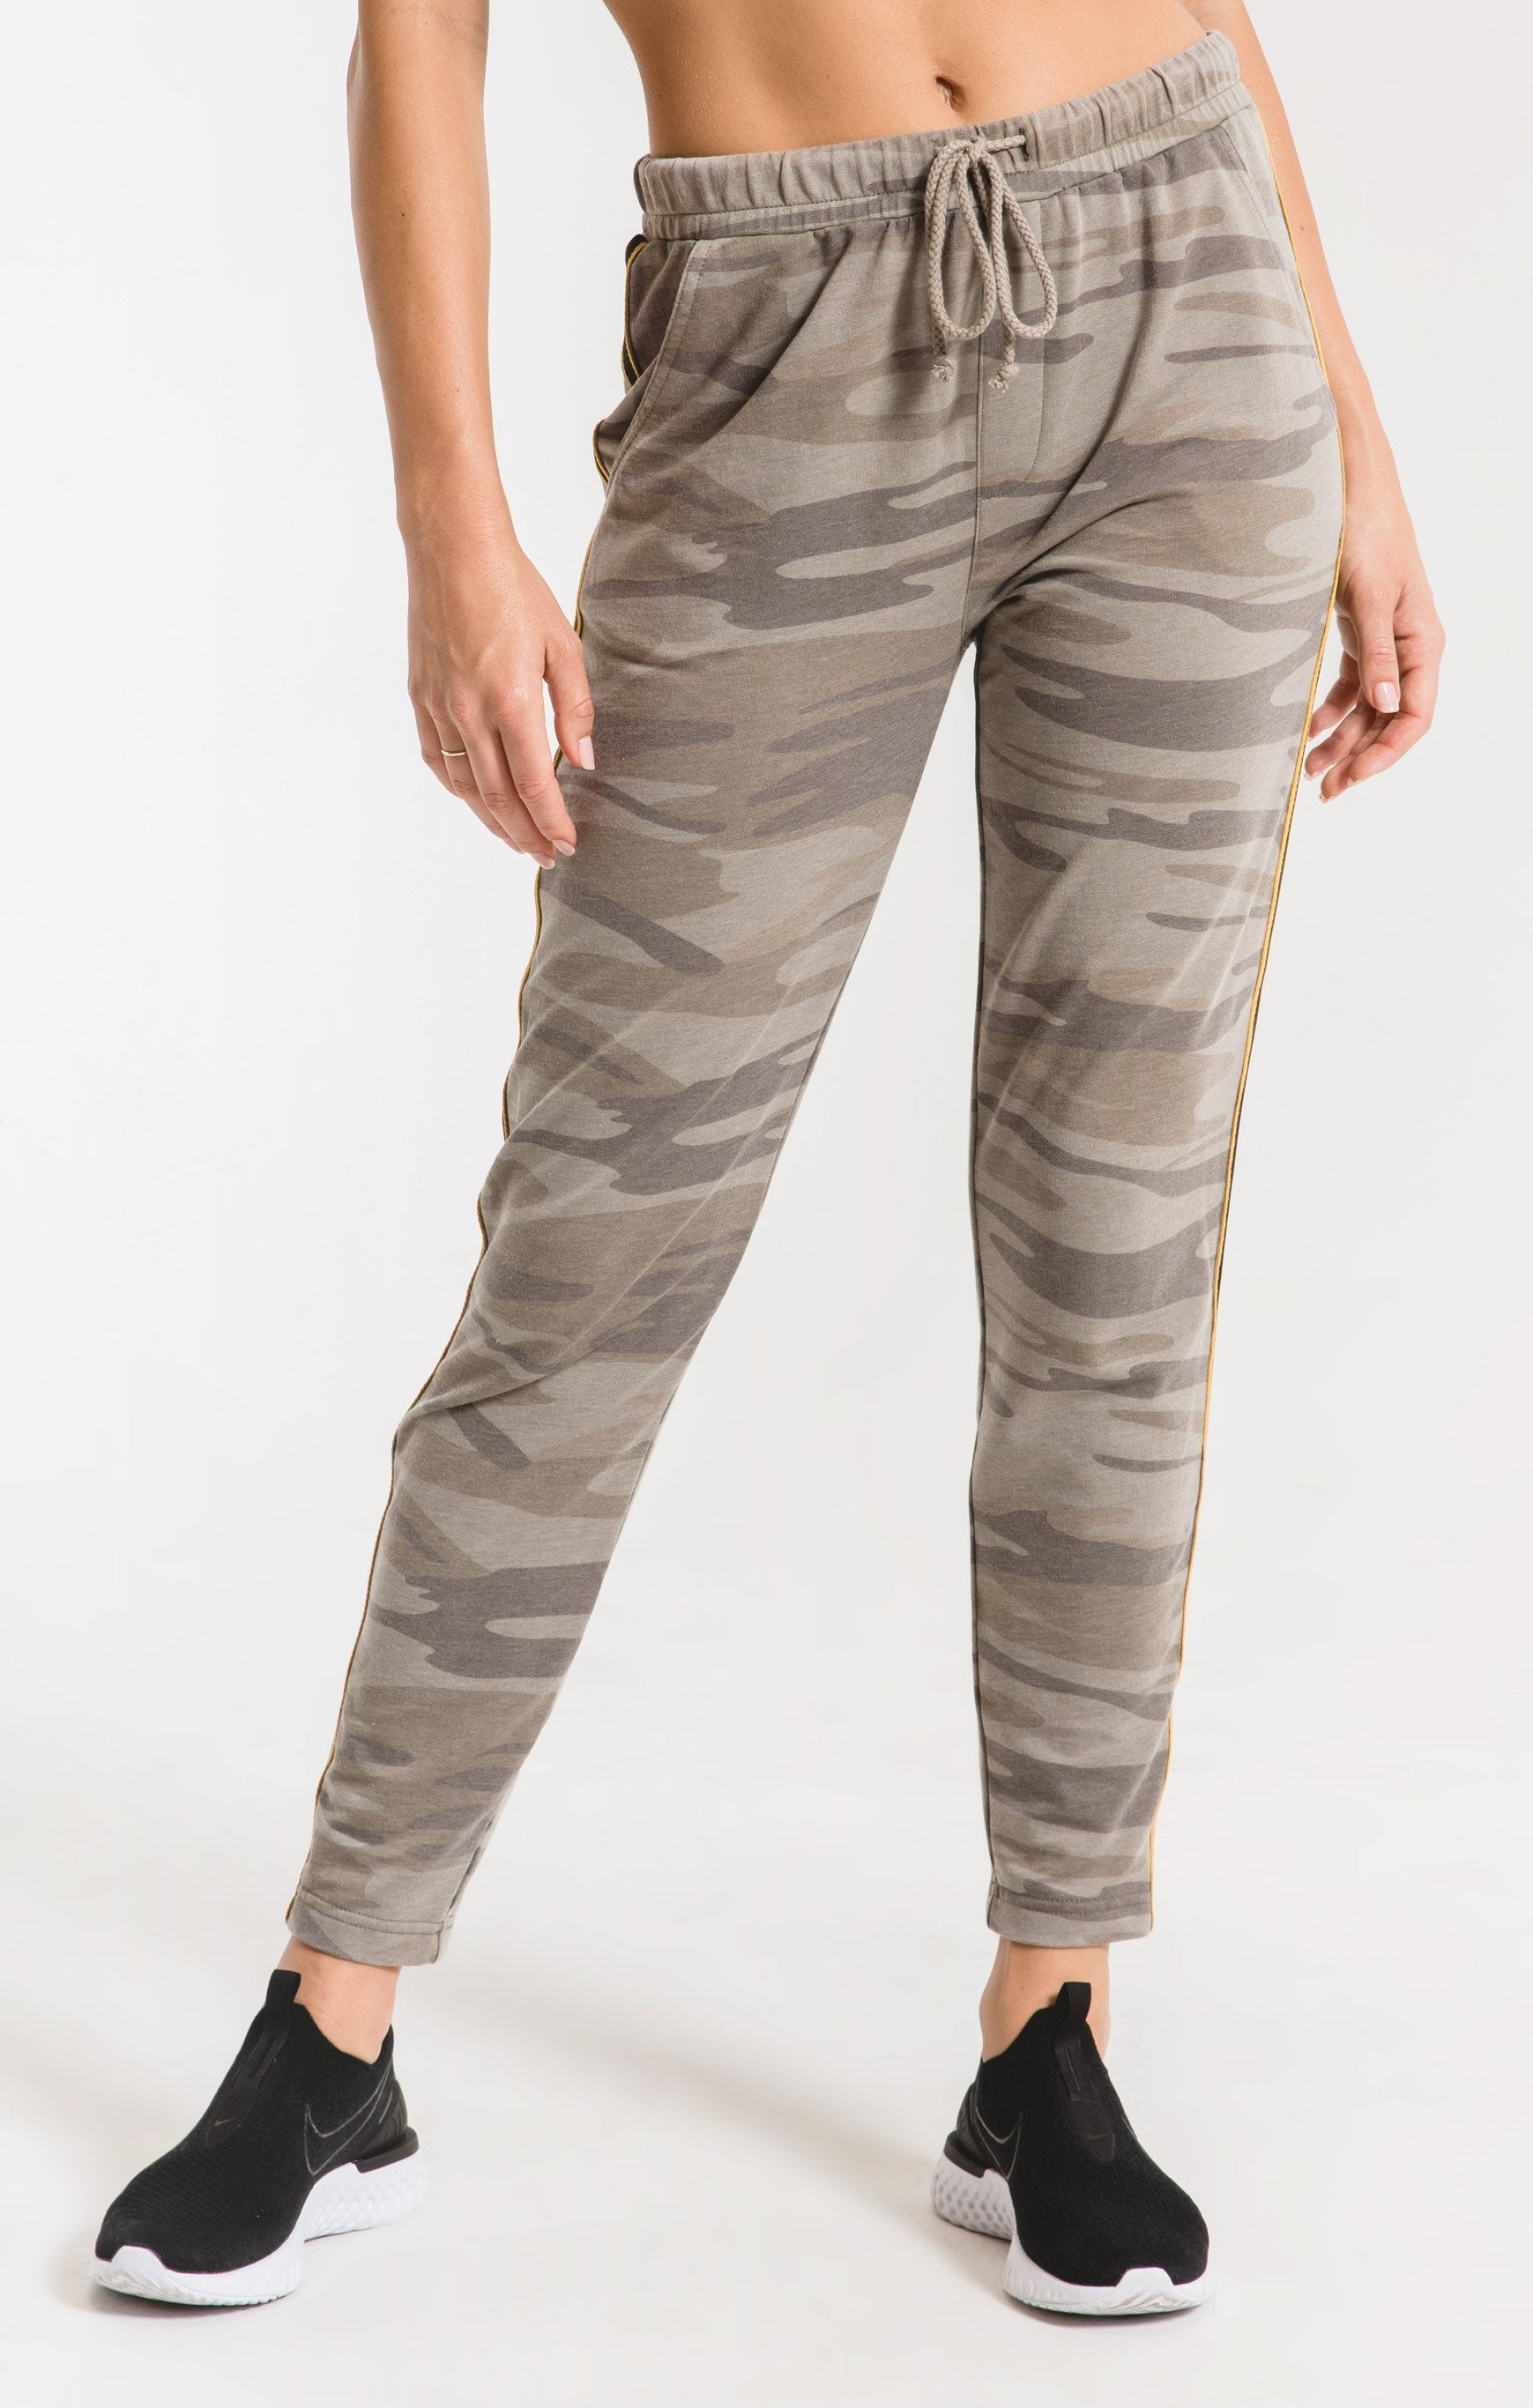 Pants Camo Sporty Jogger Pant Camo Light Sage